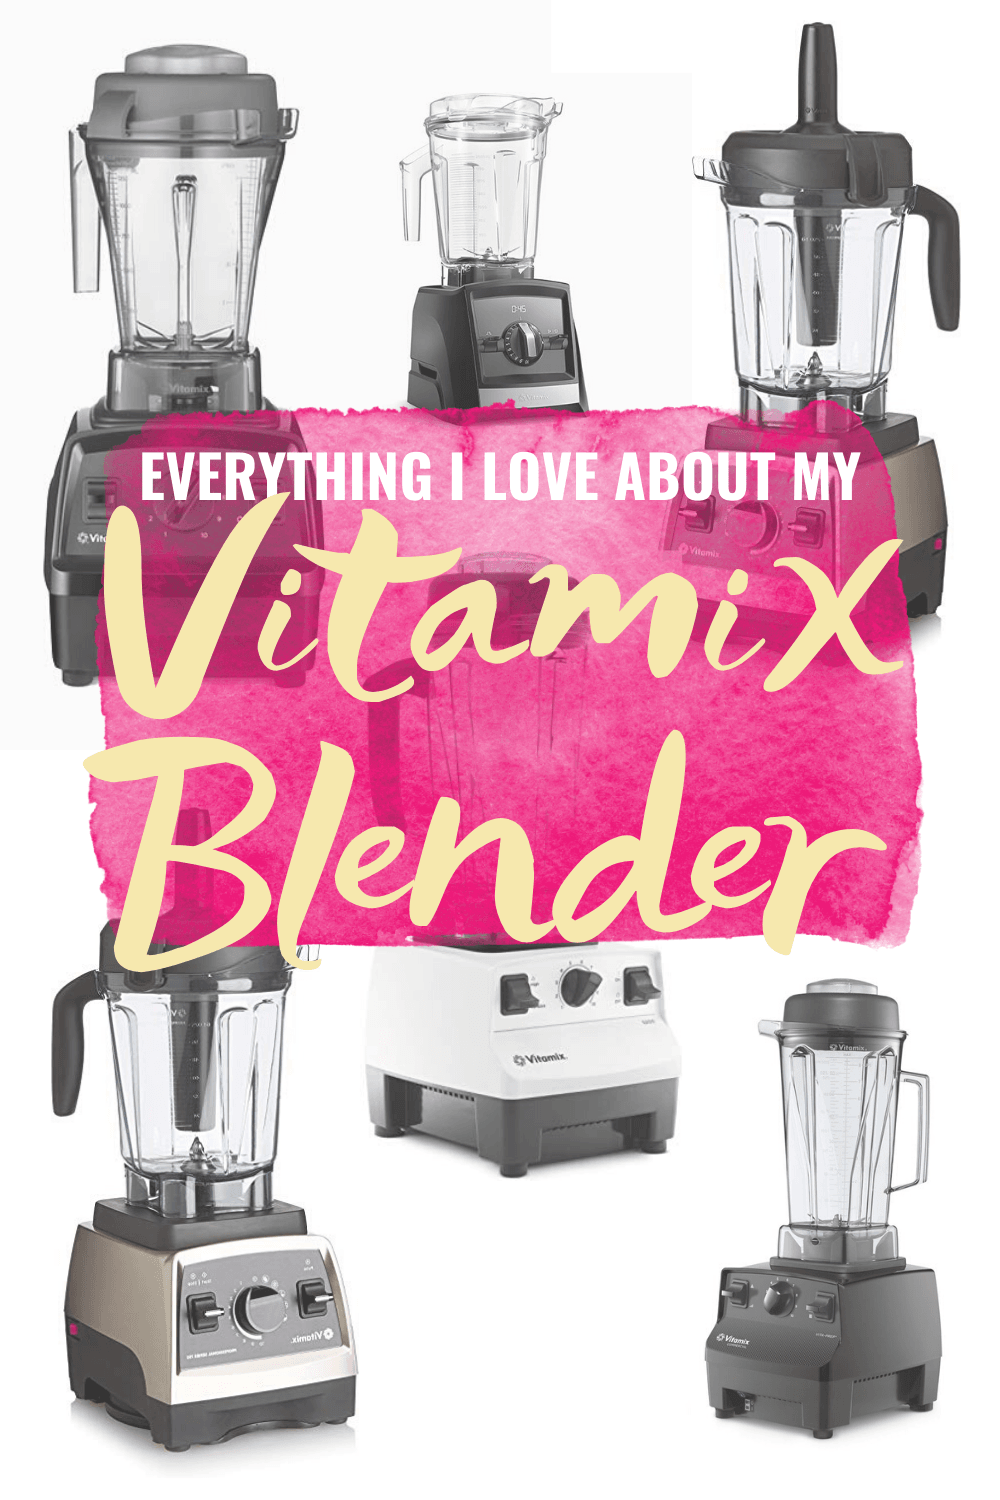 Everything I Love About My Vitamix Blender